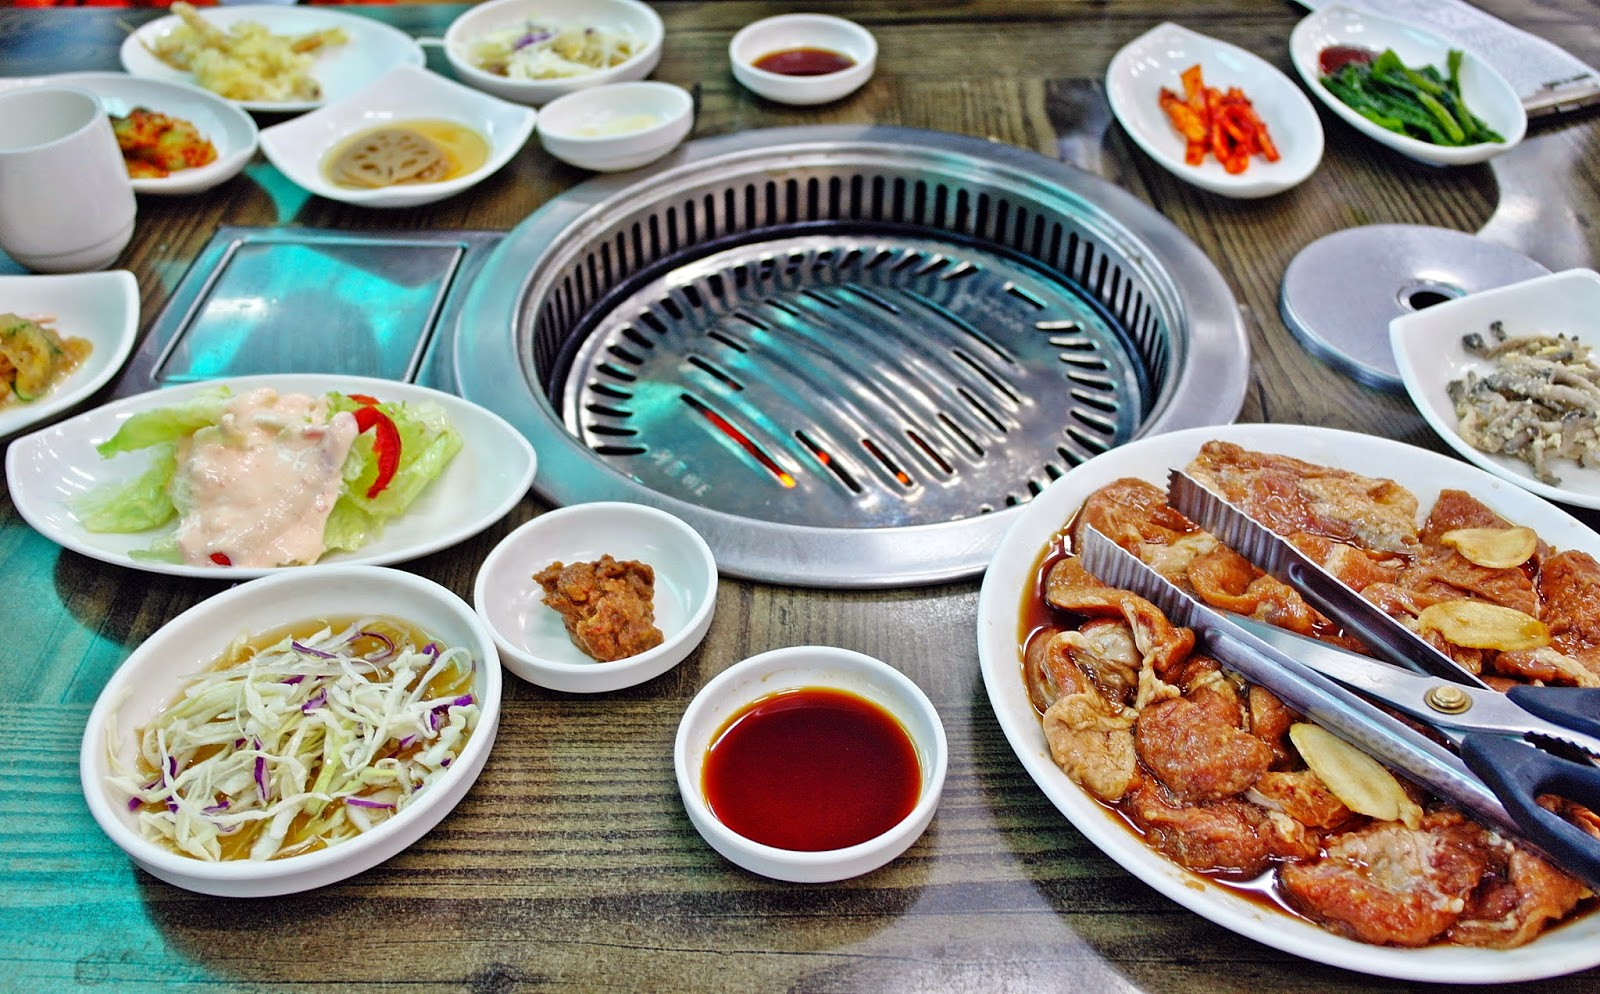 Recommended Food in Punggi: BBQ Ginseng Rib 풍기 인삼 갈비 |